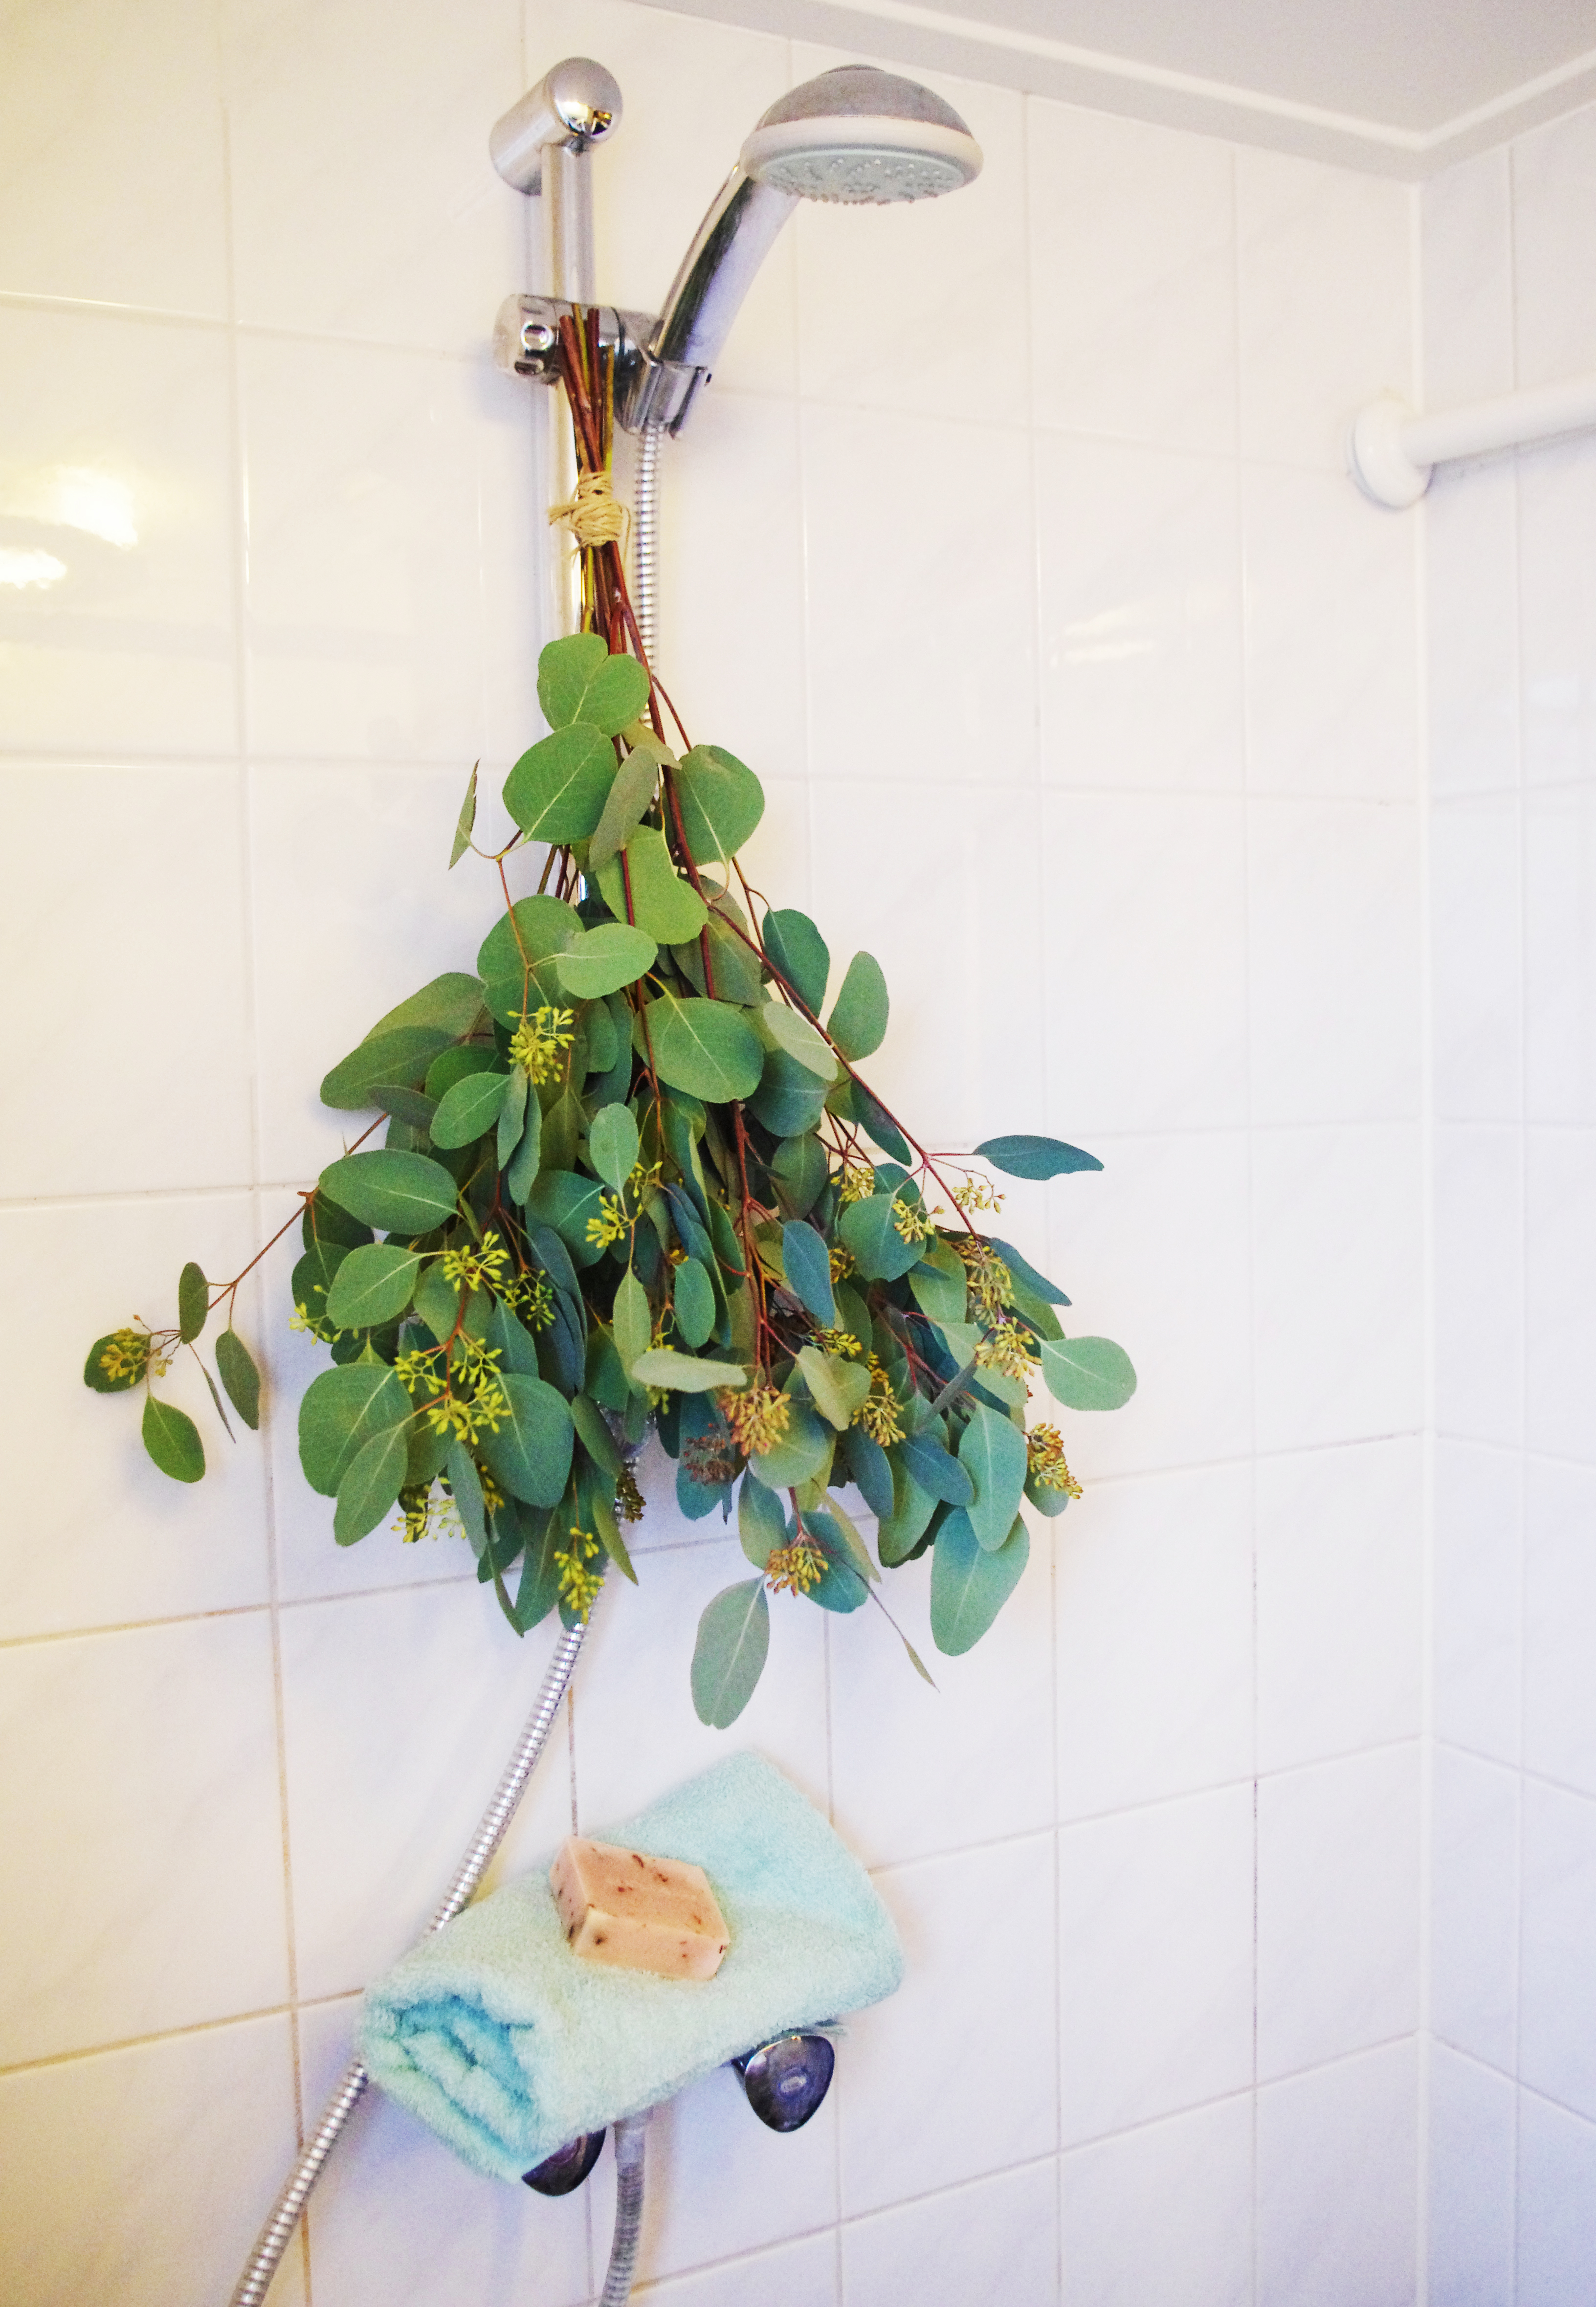 EUCALYPTUS STEAM SHOWER DIY